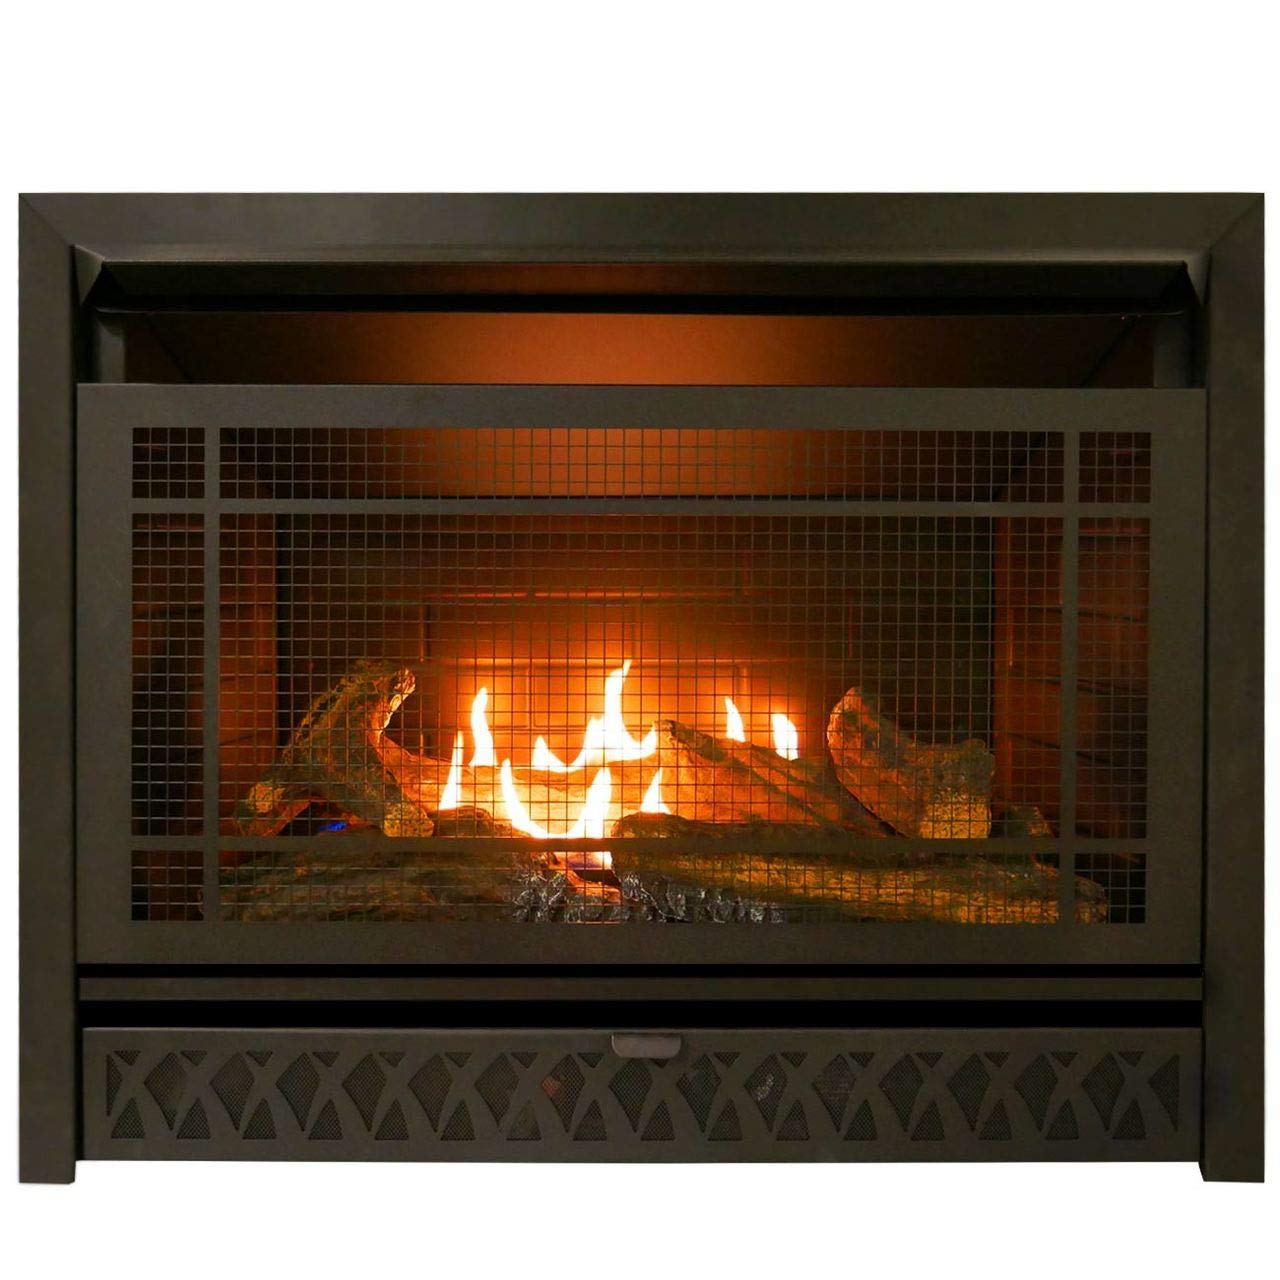 ProCom 29 Inch Vent-Free Dual Fuel Firebox Insert FBNSD28T Gas Fireplace, Large, Black by ProCom